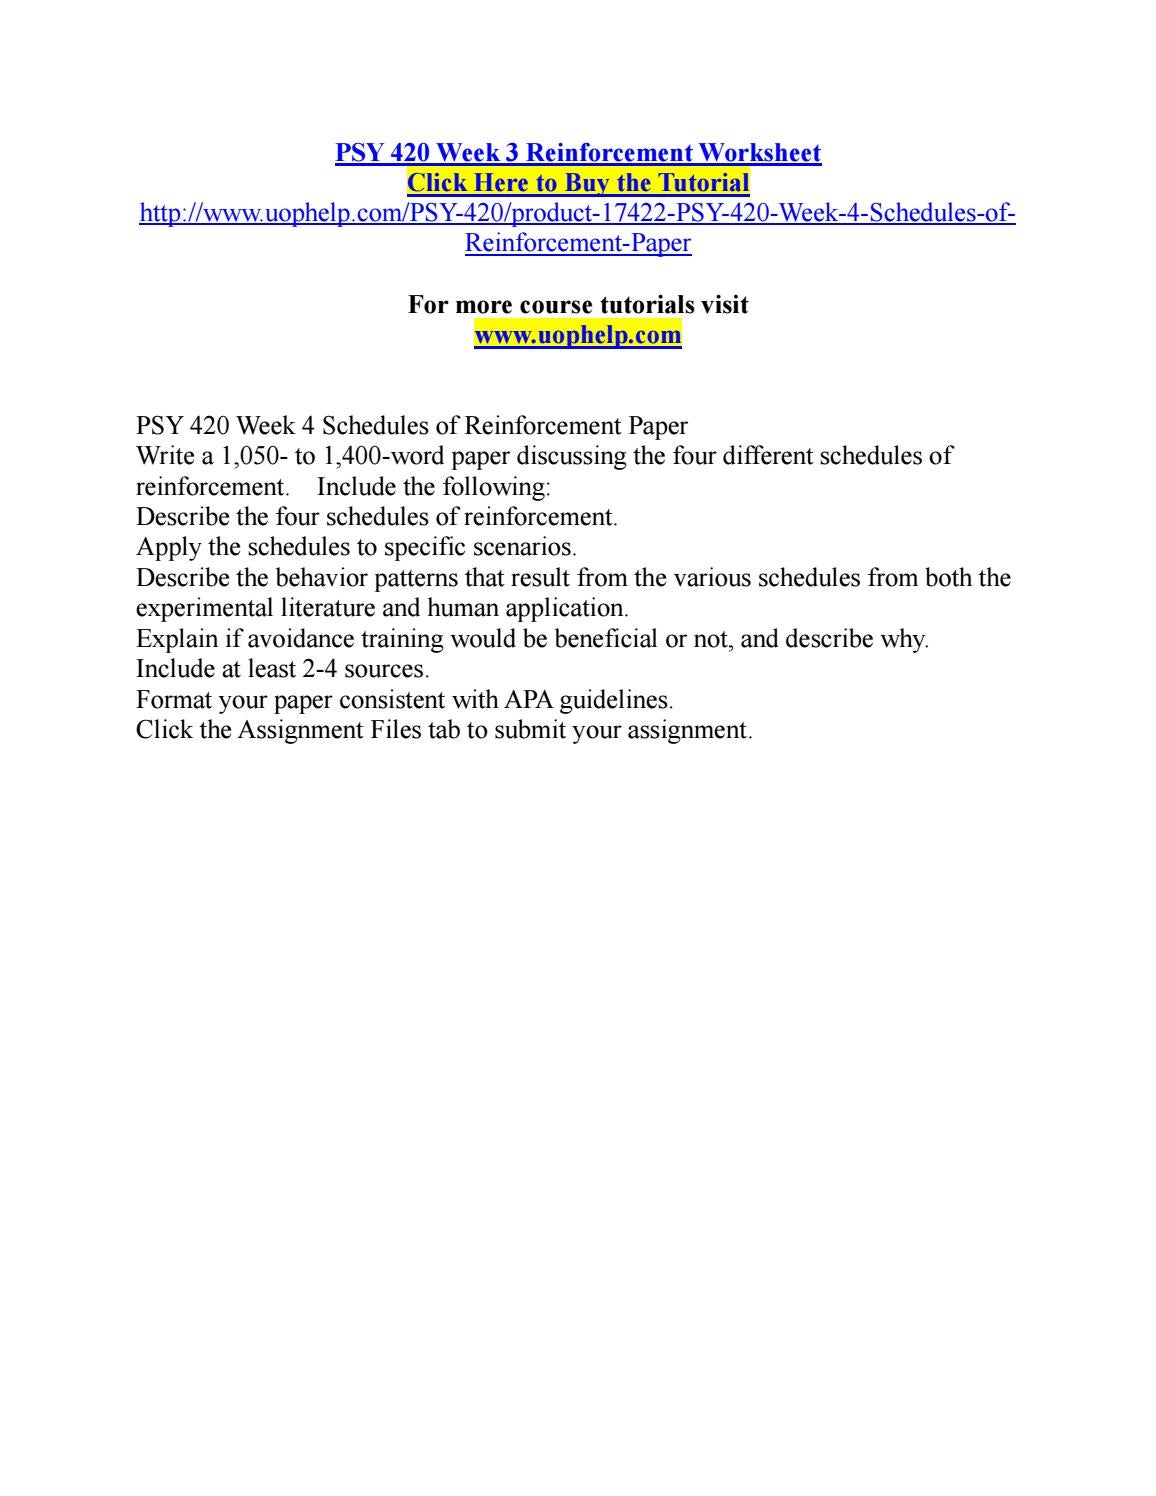 Worksheets Schedules Of Reinforcement Worksheet psy 420 week 3 reinforcement worksheet by bsdo29 issuu